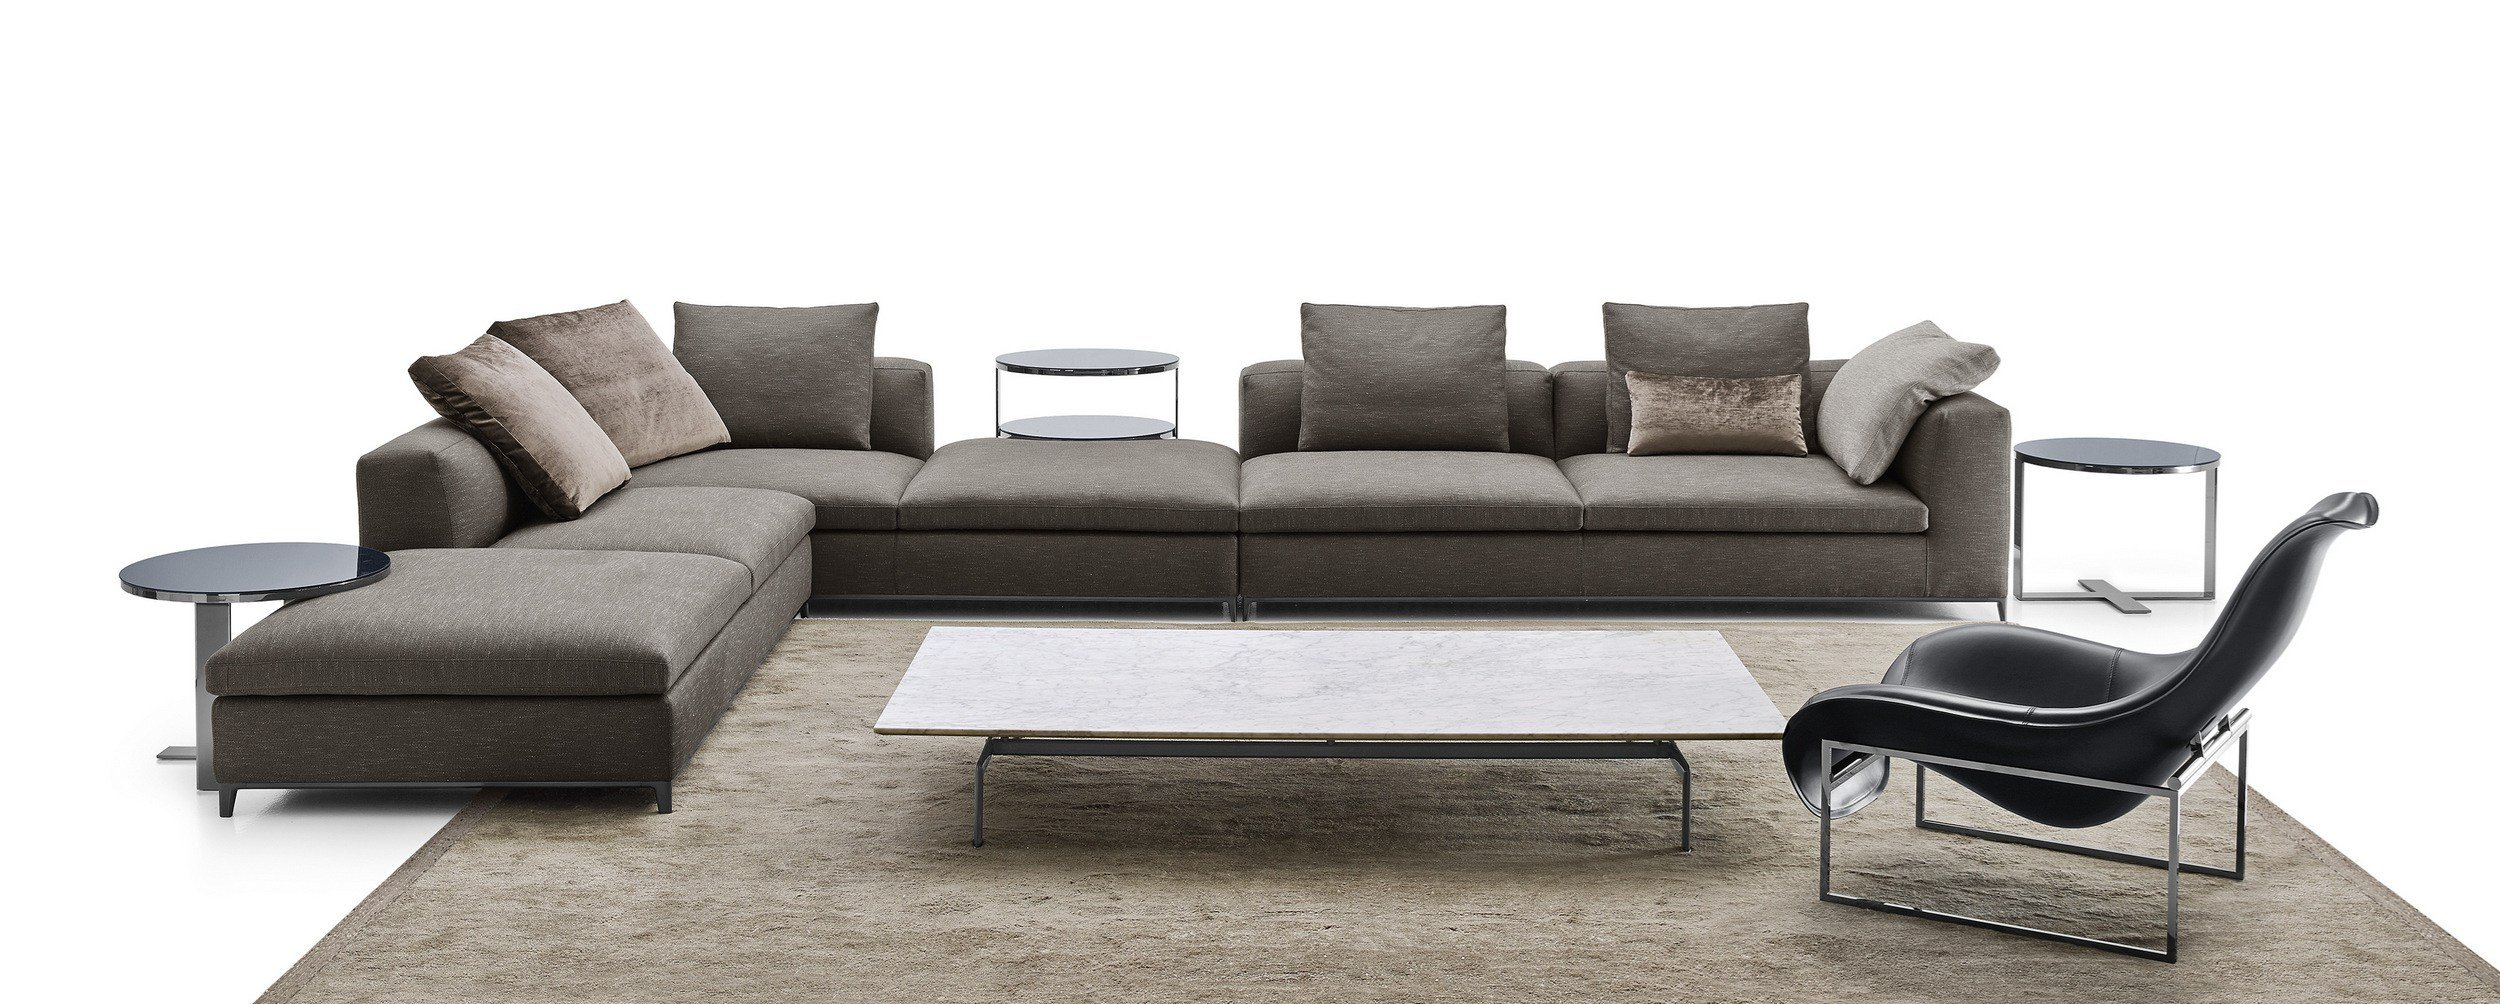 corner sectional fabric sofa michel club by b b italia. Black Bedroom Furniture Sets. Home Design Ideas